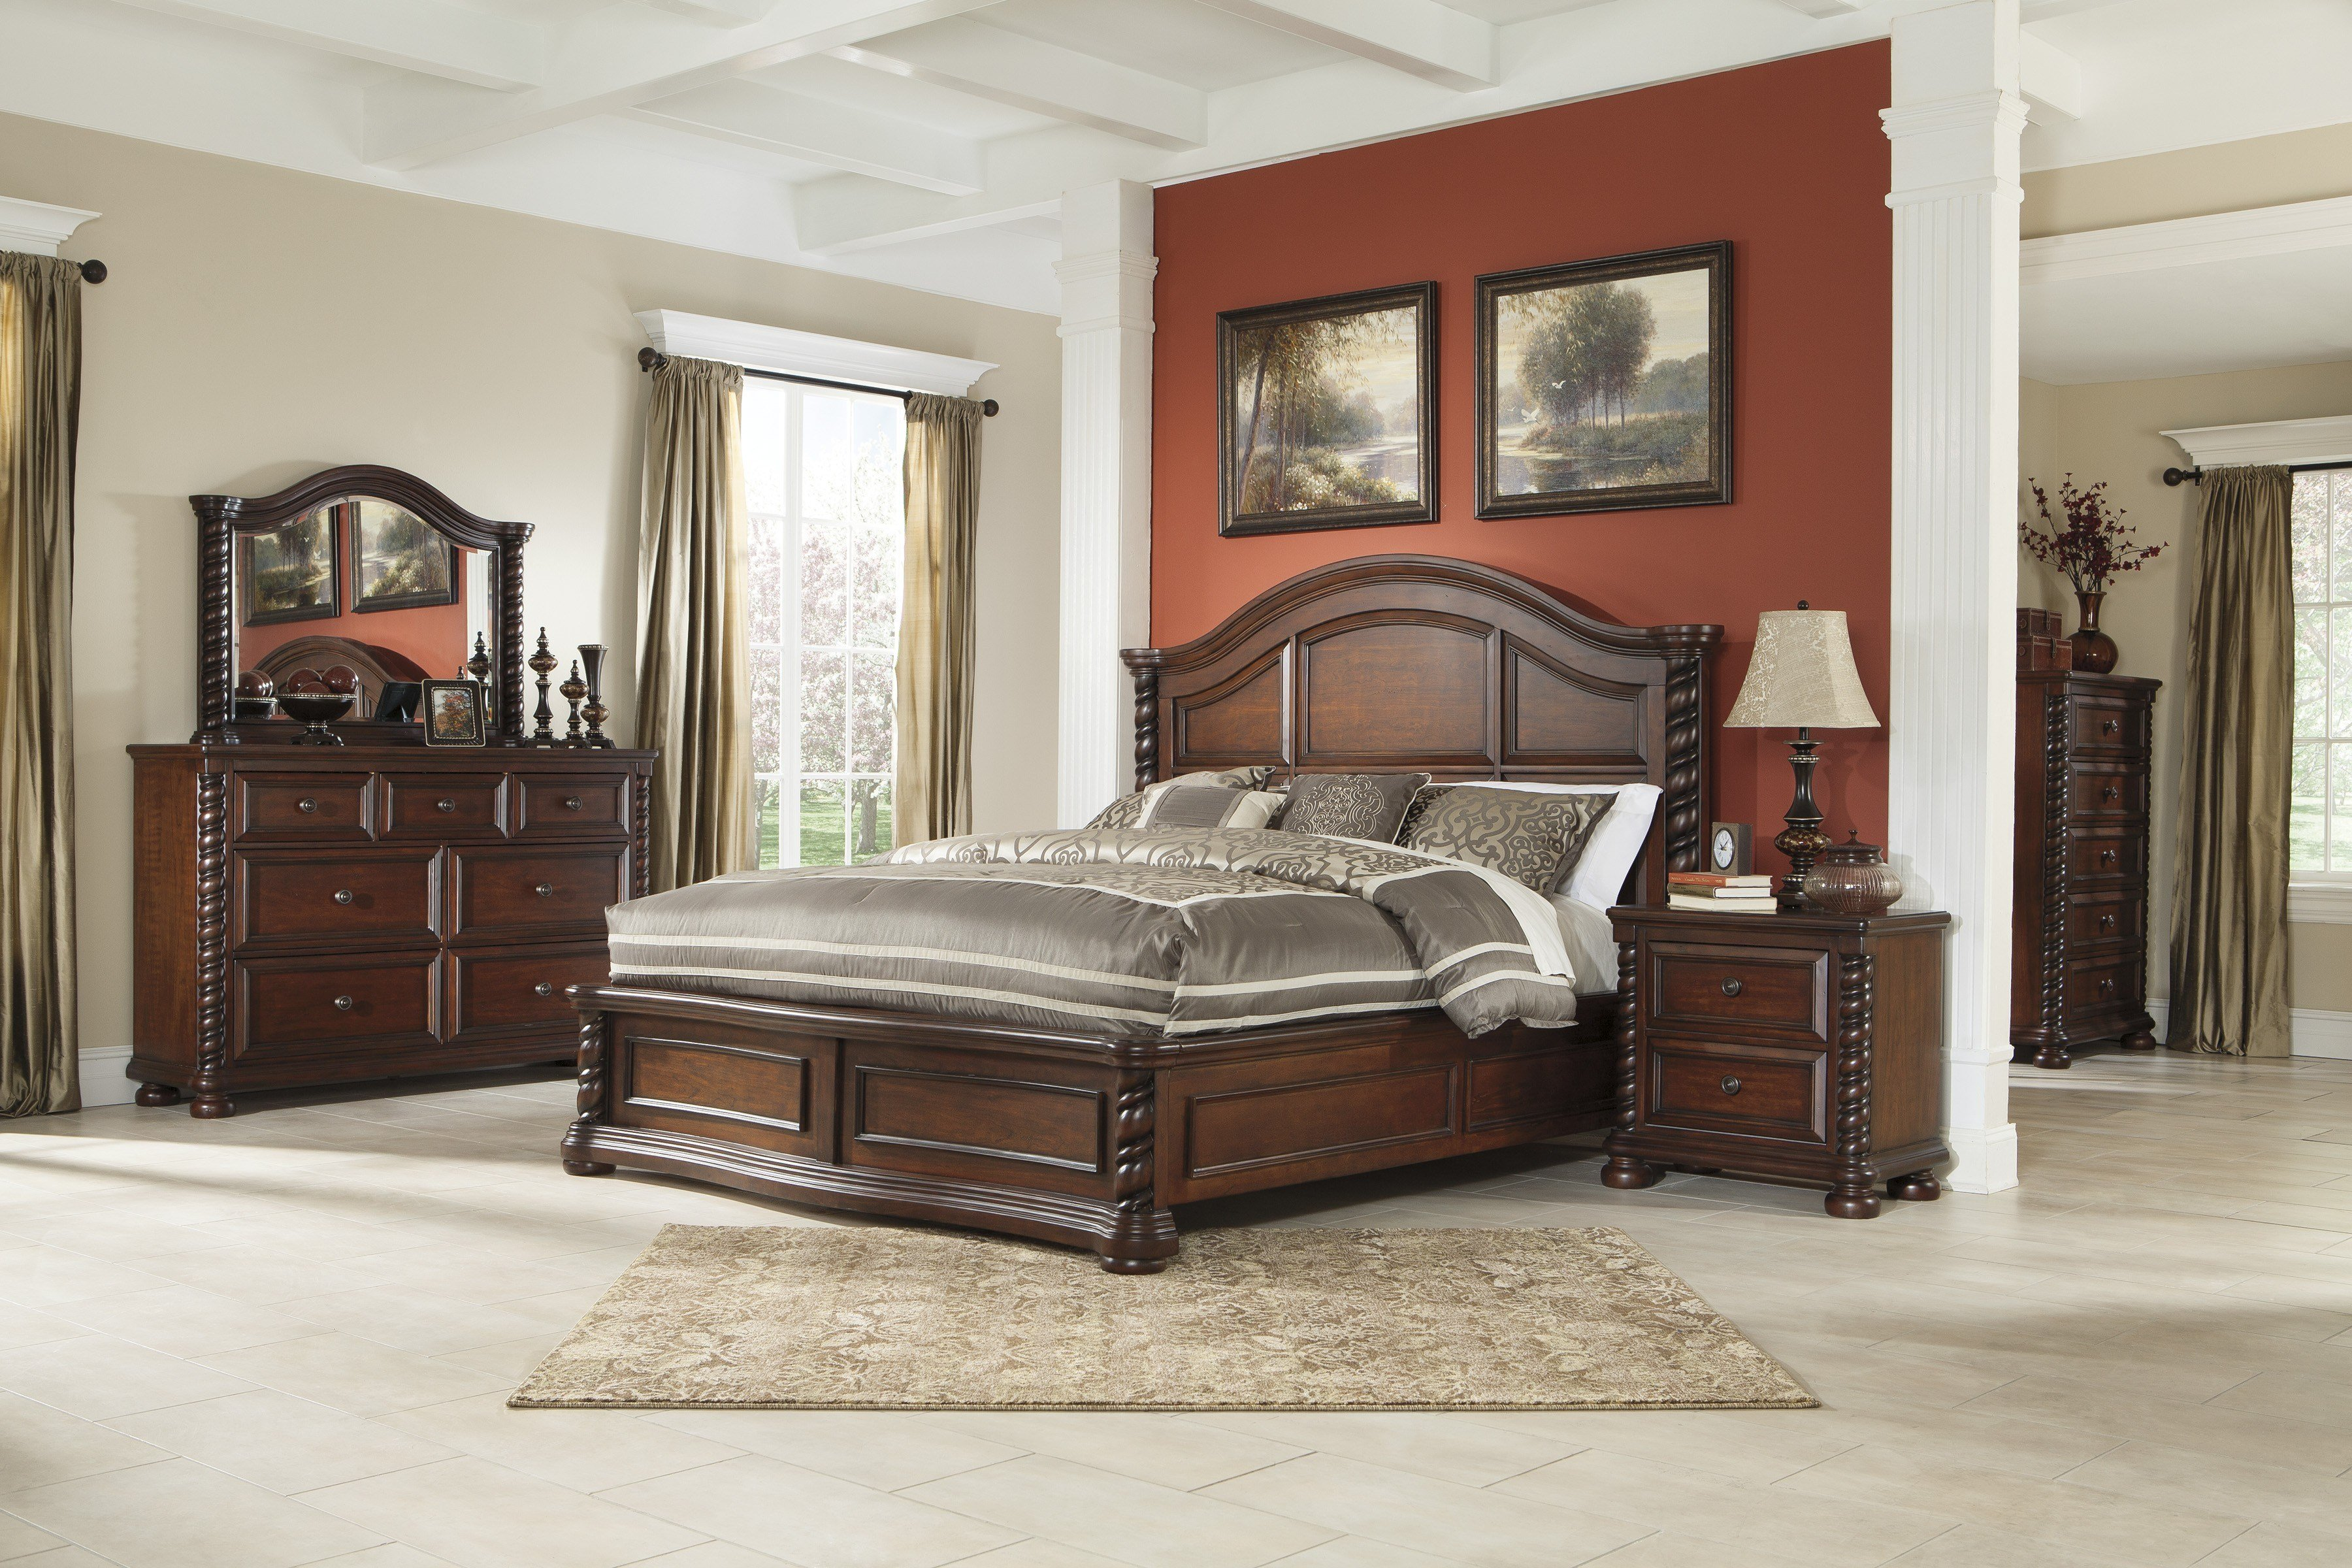 Best Brennville Bedroom Set By Ashley Furniture Depot Red With Pictures